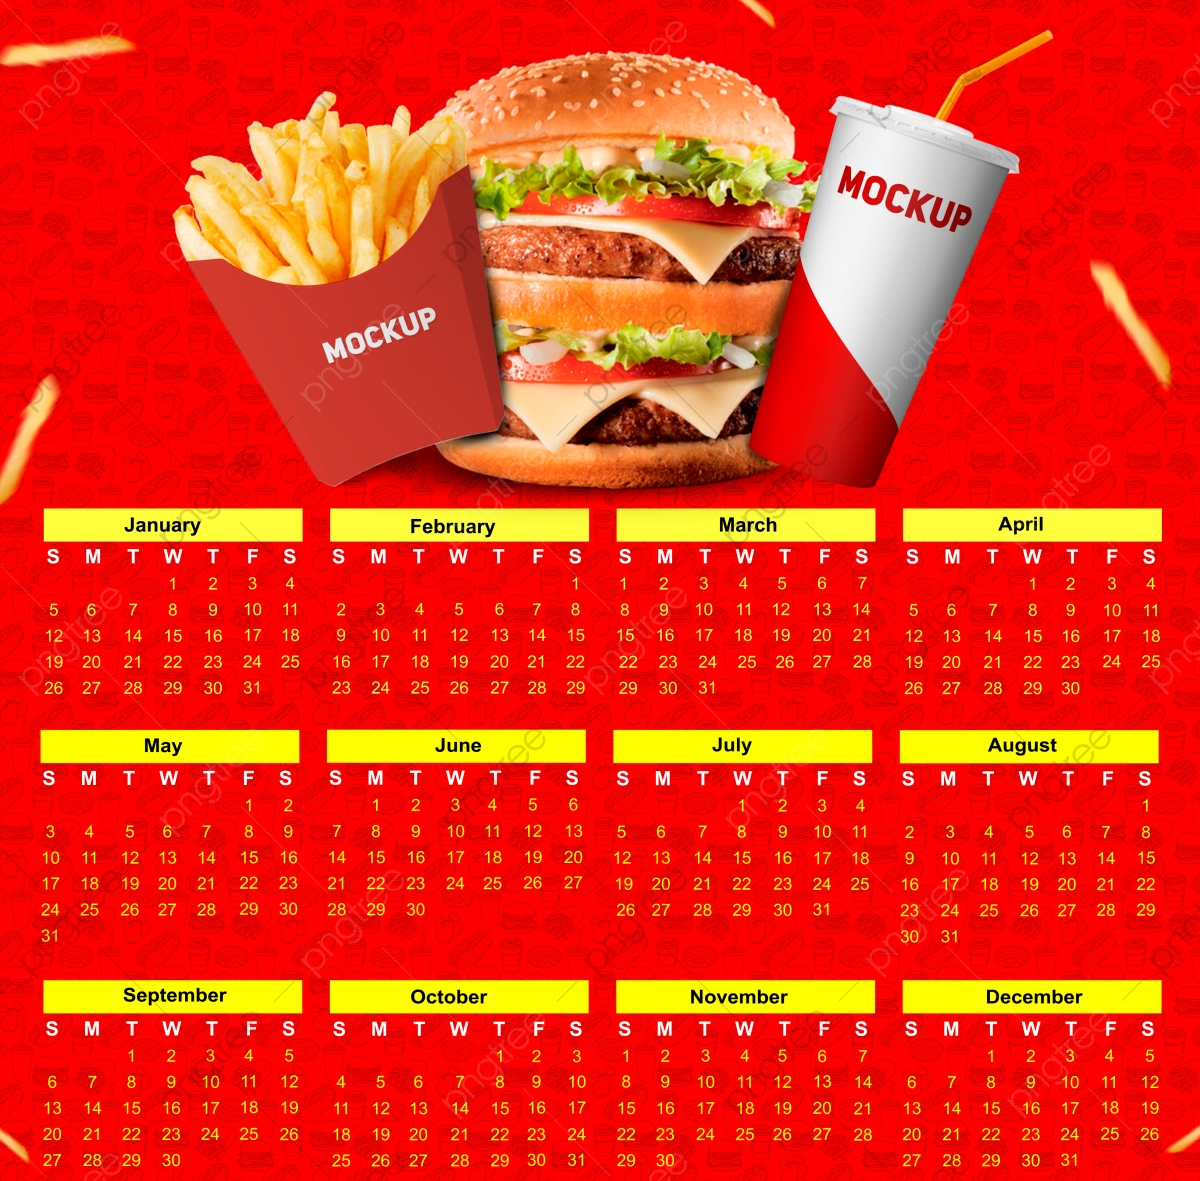 Calendar Fast Food Red And Yellow With Mockup Date Day Calendar 2020 Png Transparent Clipart Image And Psd File For Free Download